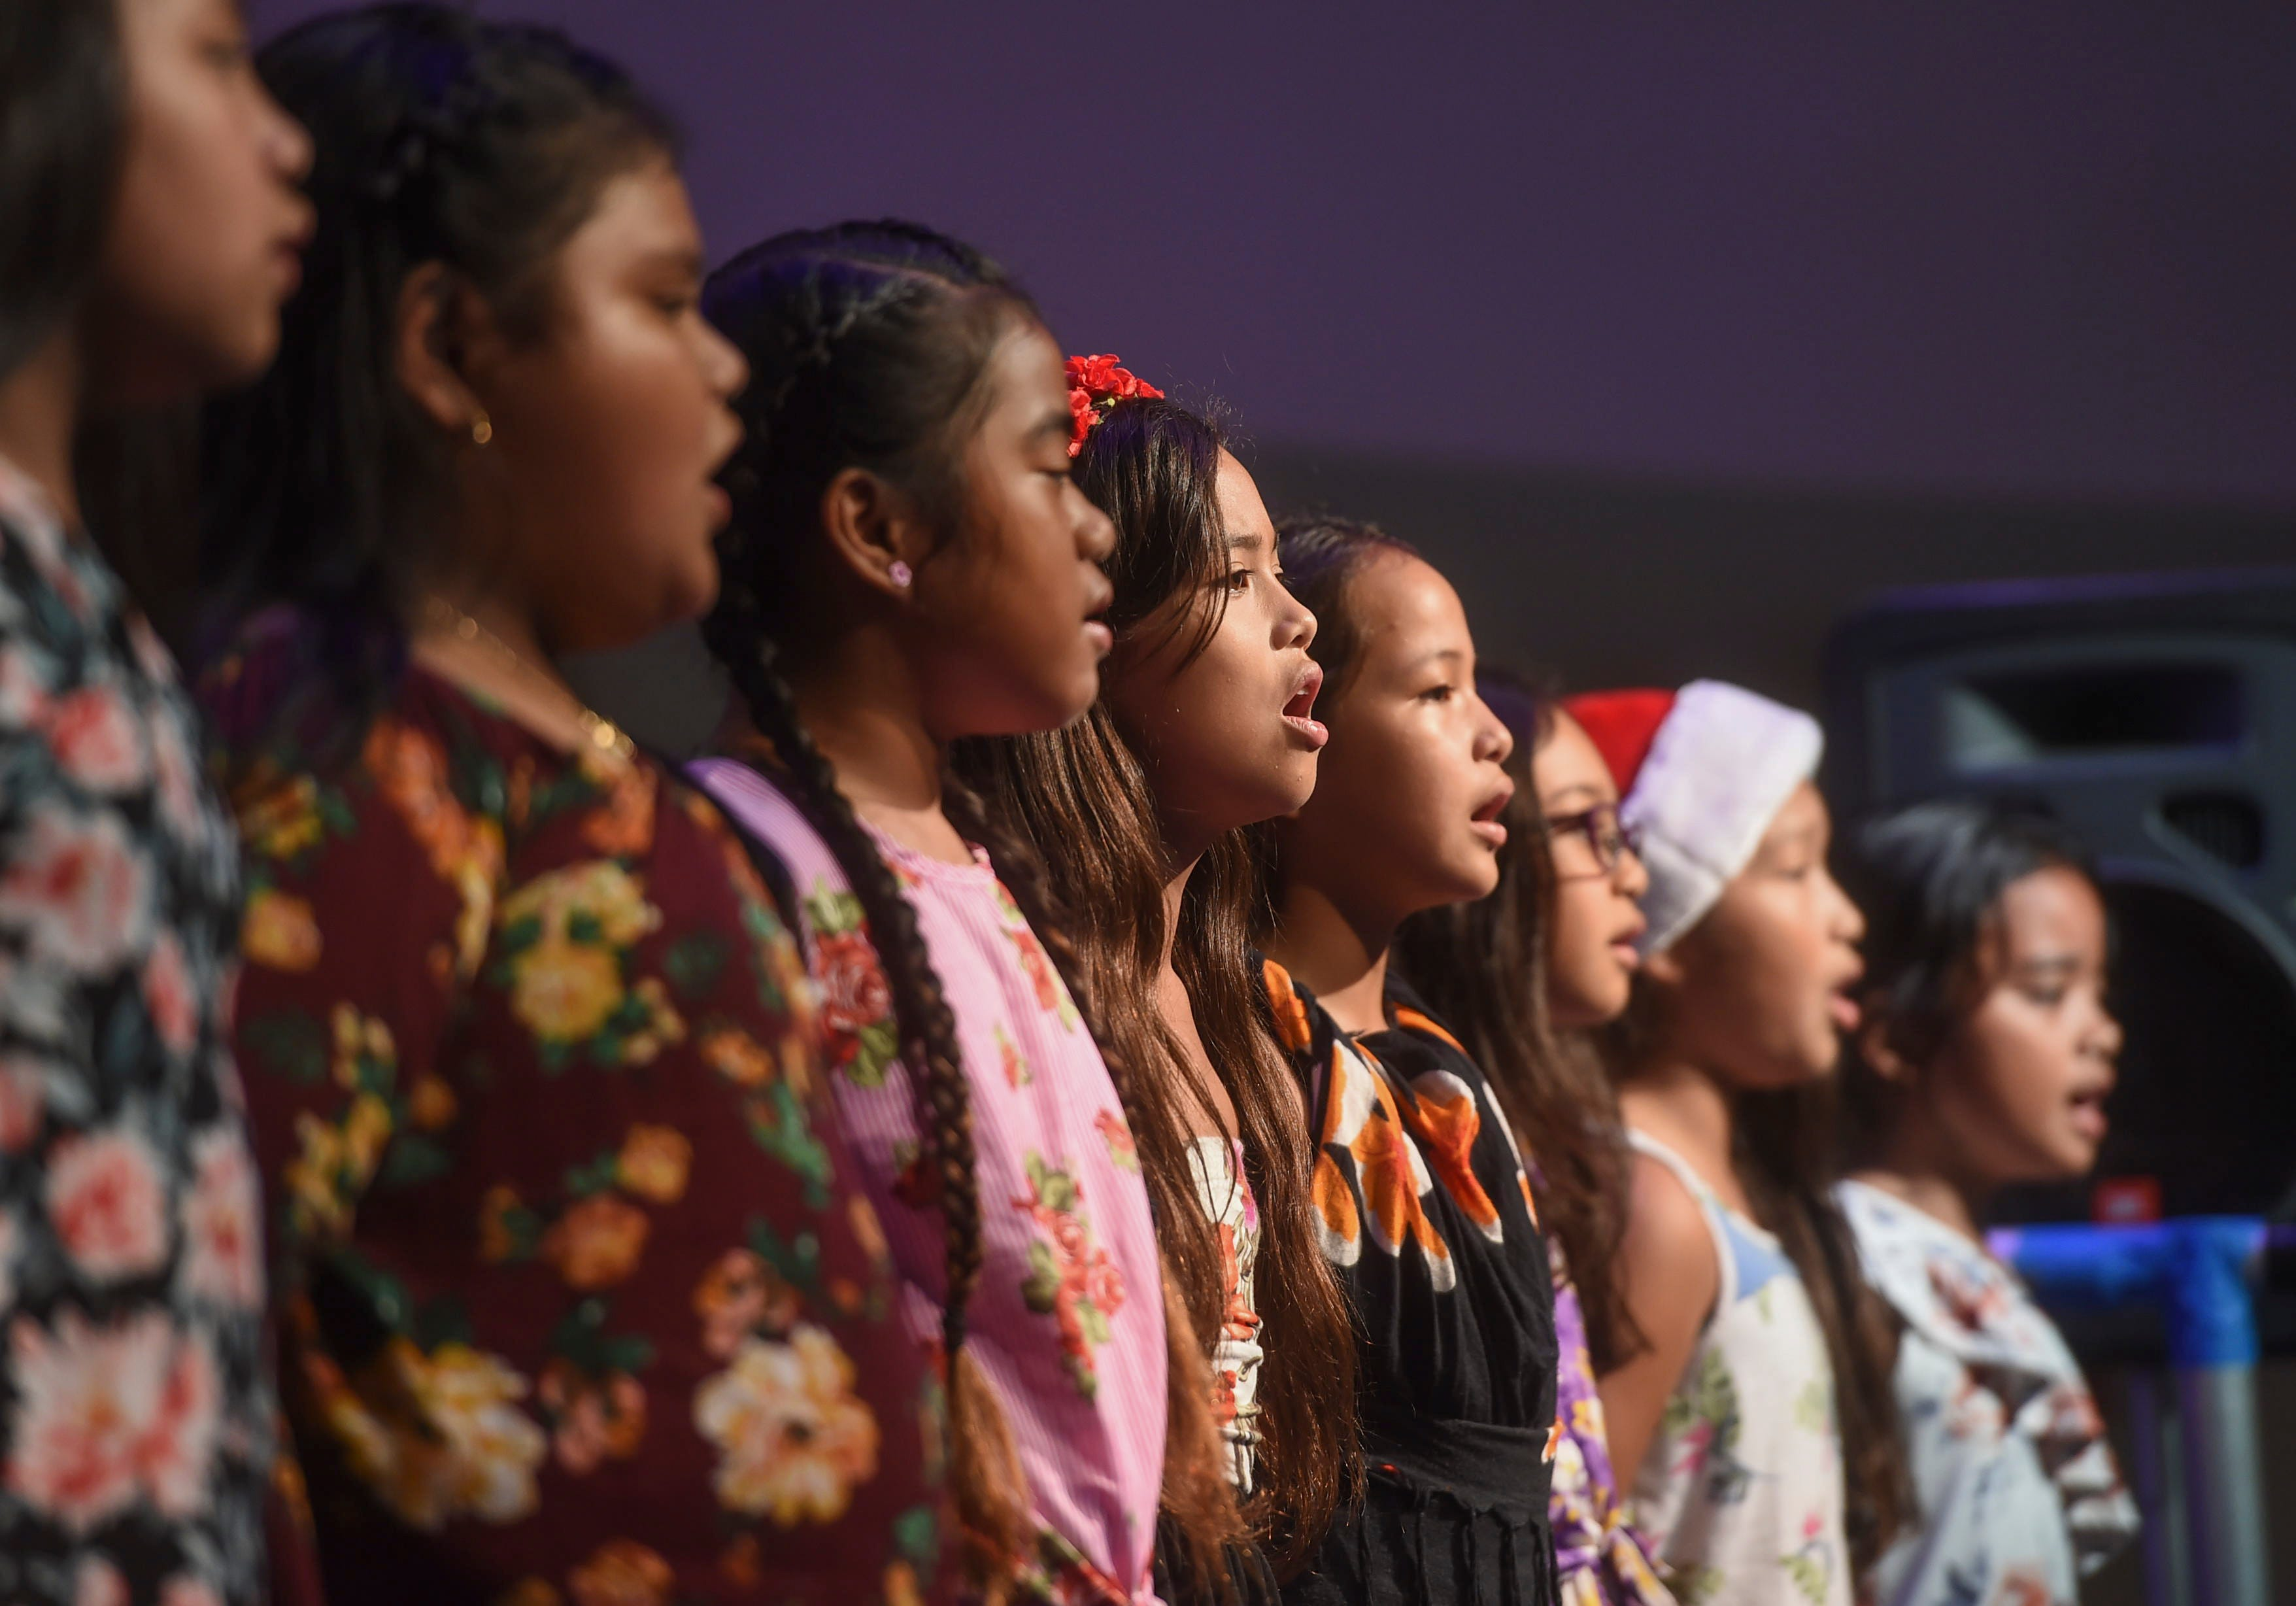 The C.L. Taitano Elementary School Deerlings perform during the sixth annual Guam Chamber of Commerce Song Festival at Agana Shopping Center on Nov. 24, 2018.